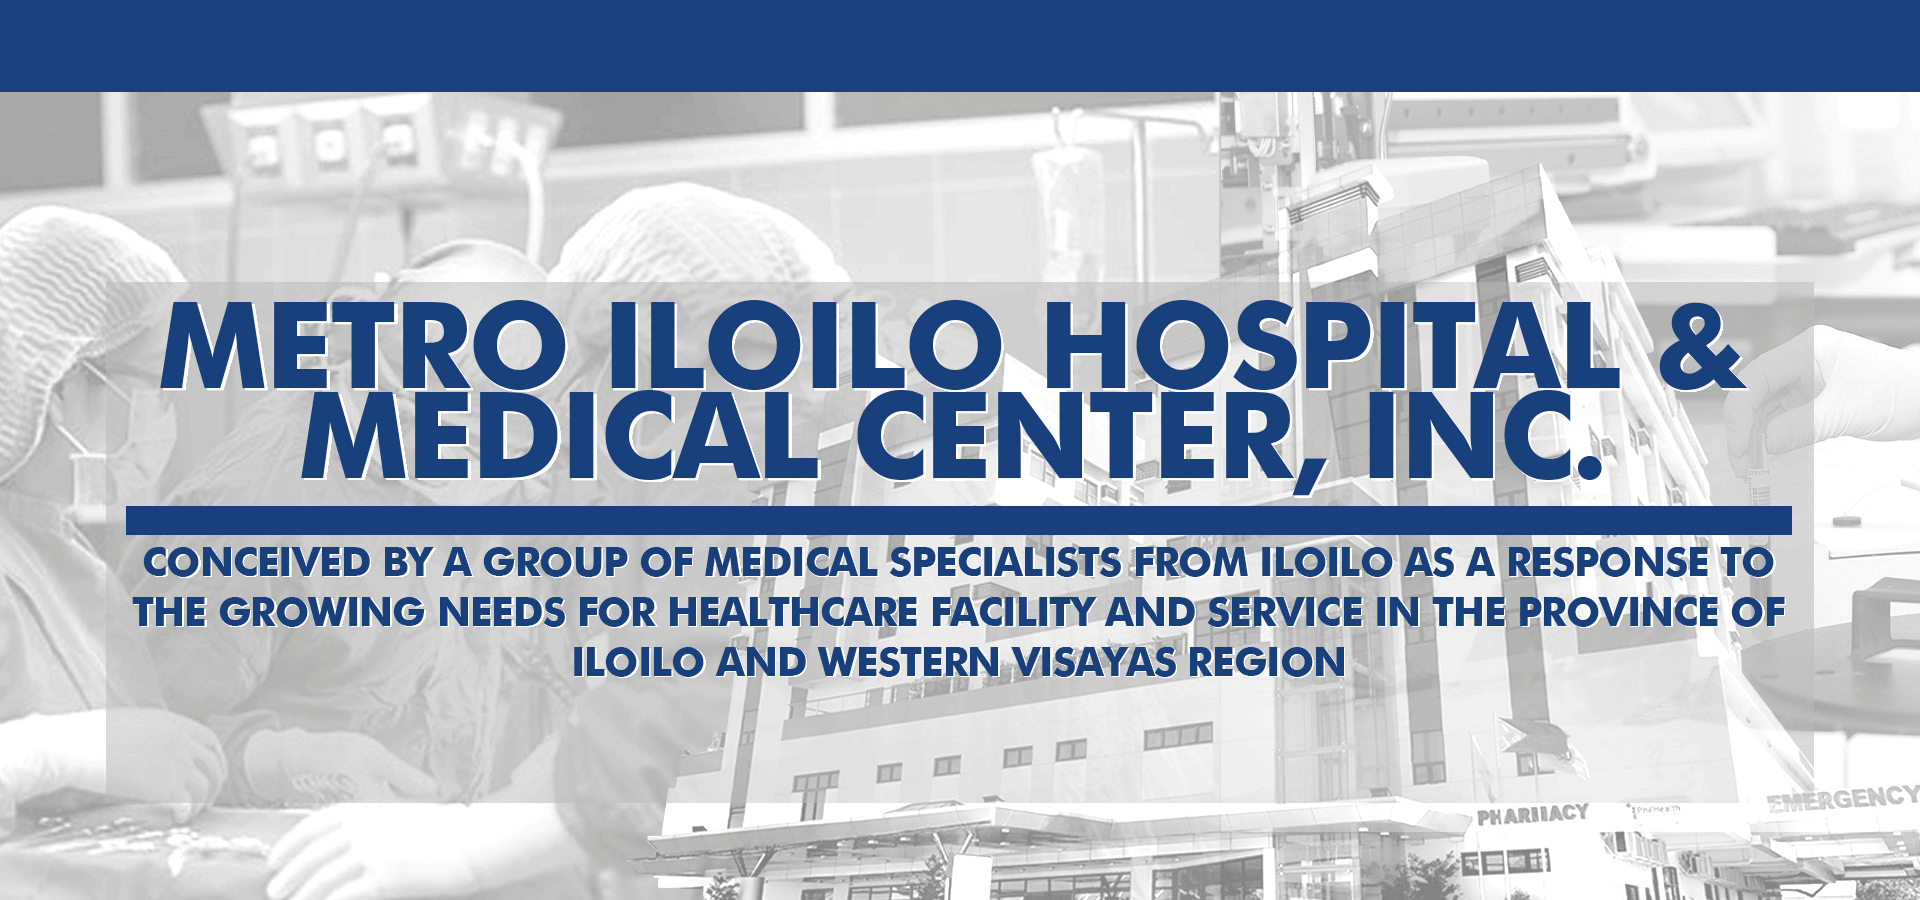 Metro Iloilo Hospital & Medical Center, Inc.